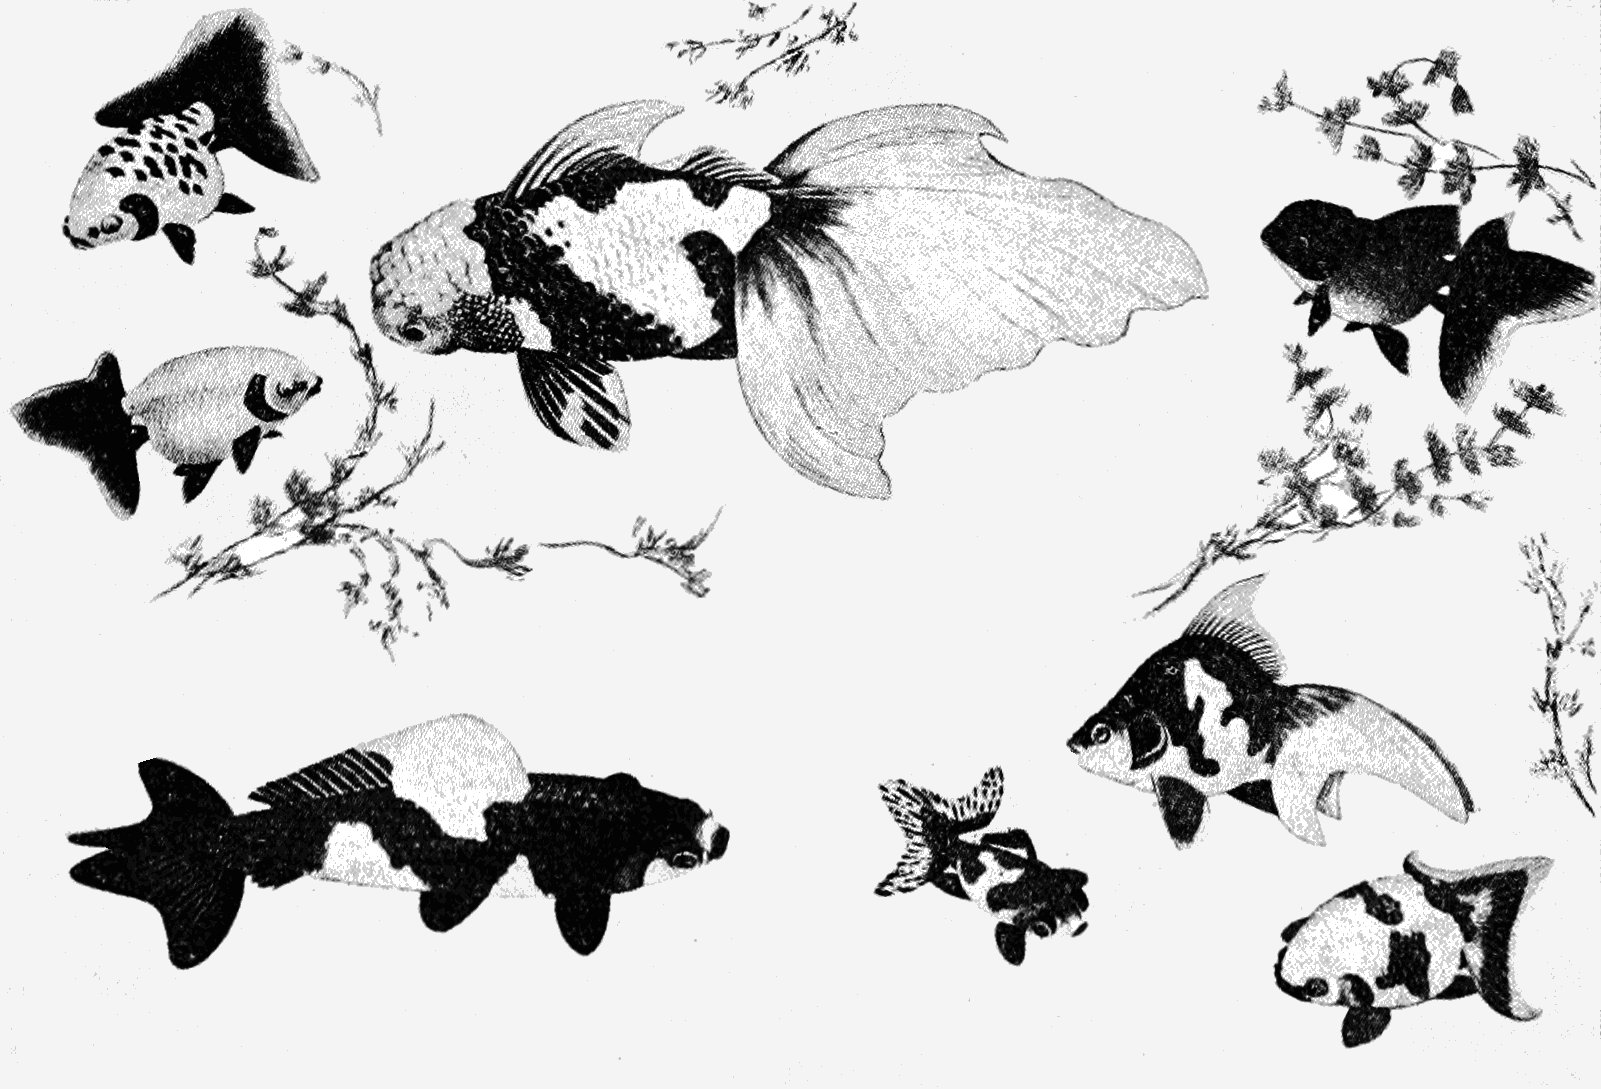 Varieties of gold-fish (from Japanese paintings) : Lower left, wakin; lower right (group of three), deme, ryukin, ranchu; upper left (two), ranchu; upper middle and right, oranda shishigashira.  1905. The Popular Science Monthly , Volume 67. pp 382